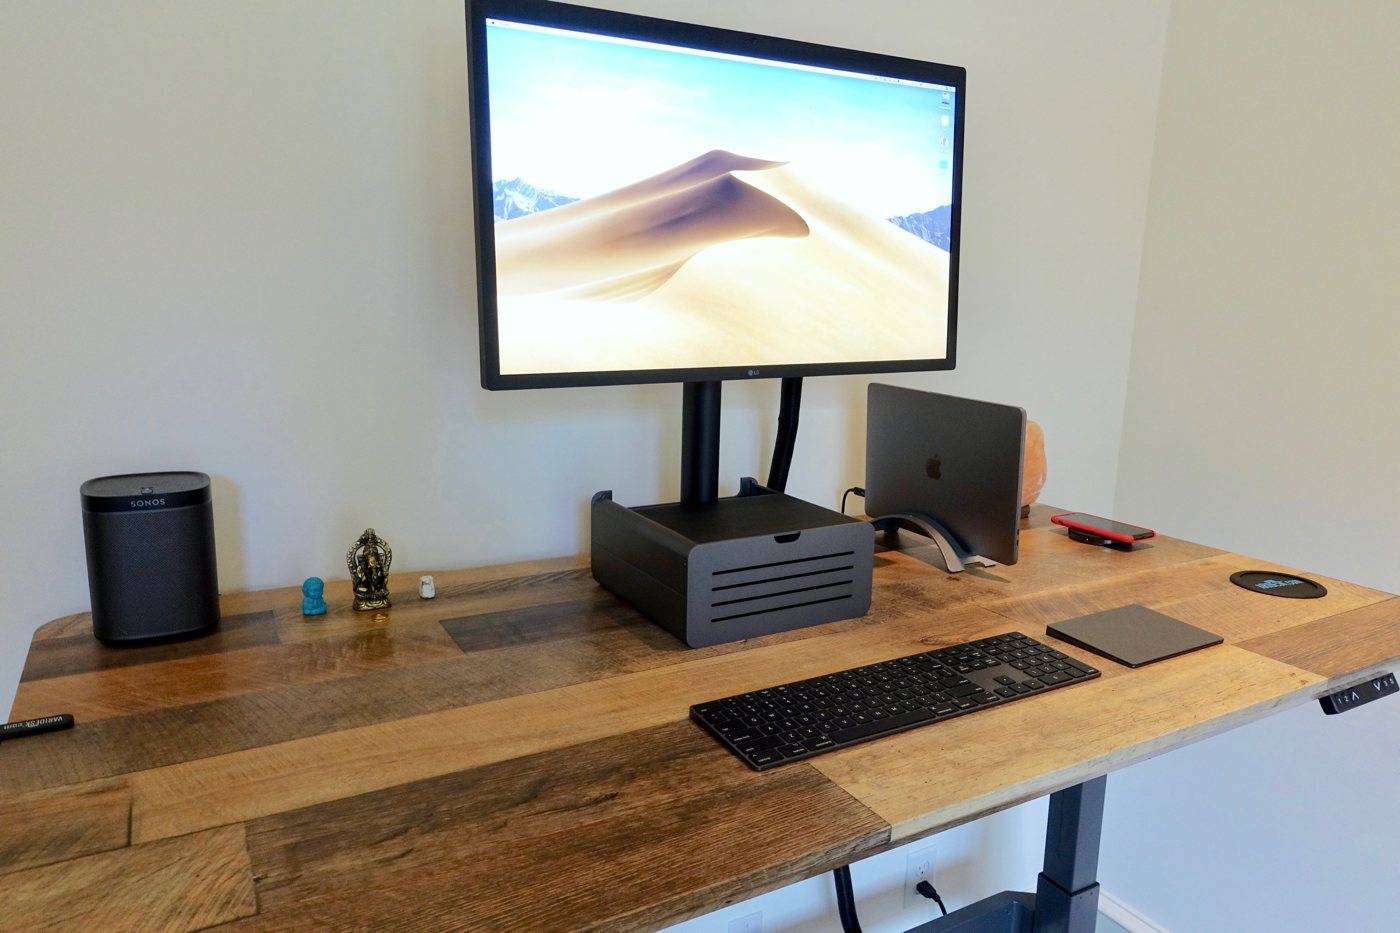 Justin Kaplan's Mac and iPhone setup)